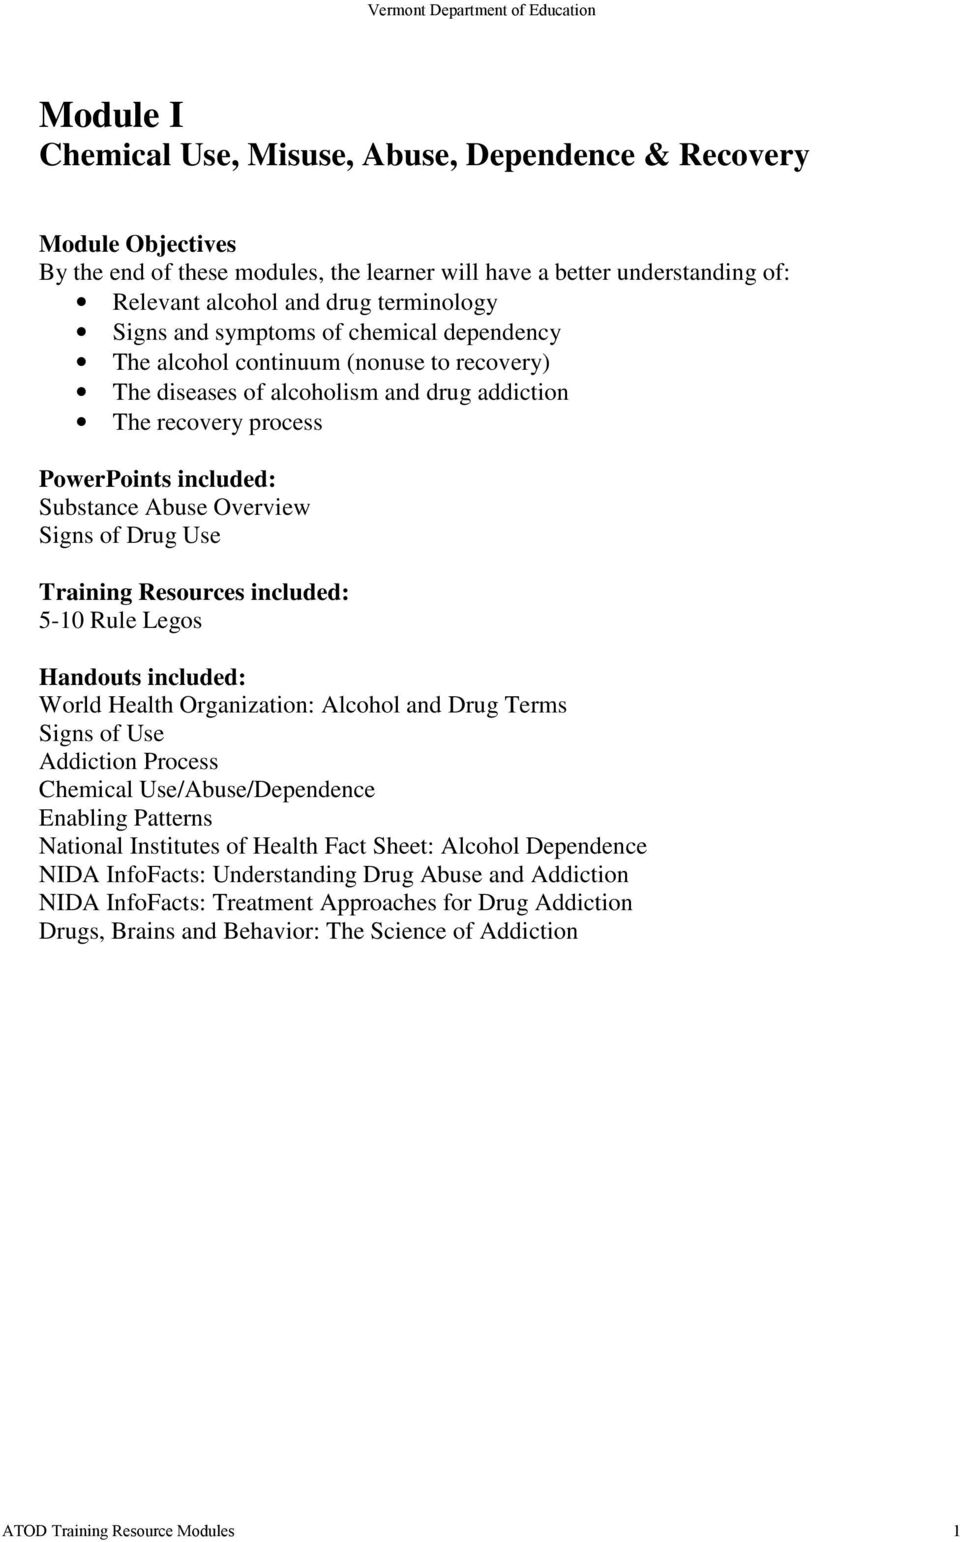 of Drug Use Training Resources included: 5-10 Rule Legos Handouts included: World Health Organization: Alcohol and Drug Terms Signs of Use Addiction Process Chemical Use/Abuse/Dependence Enabling